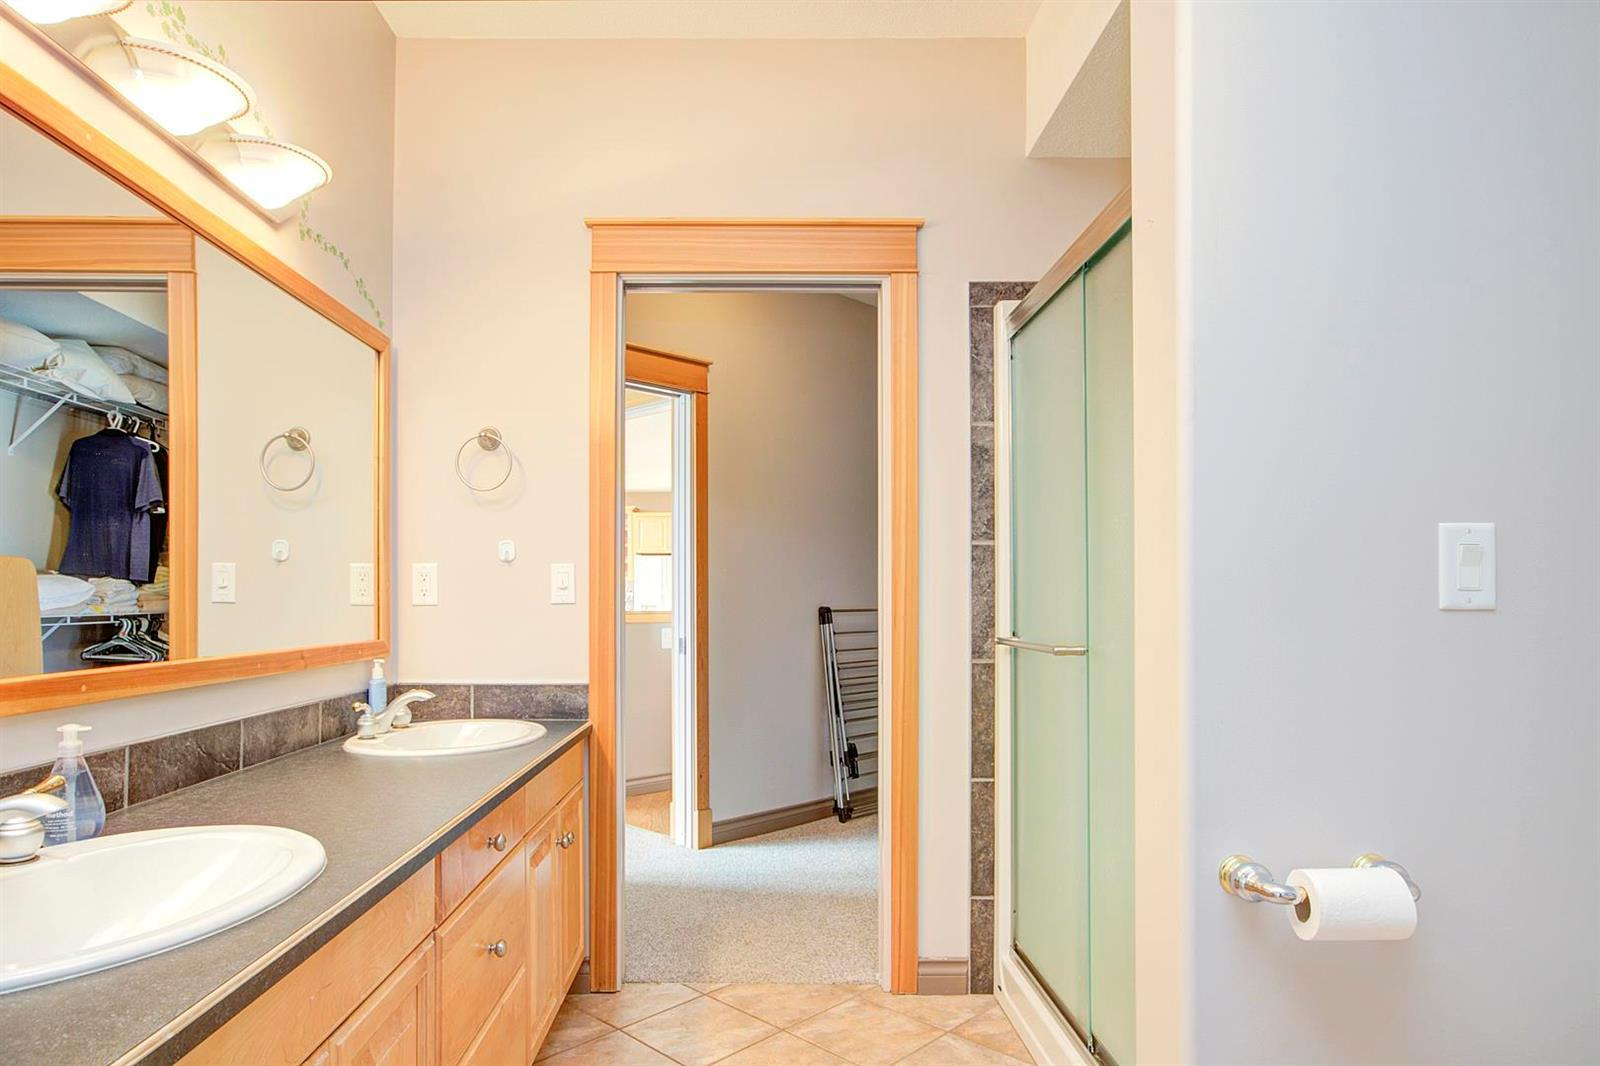 #203 3473 Lakeview Place,, Enderby, British Columbia  V0E 1V5 - Photo 26 - 10229003